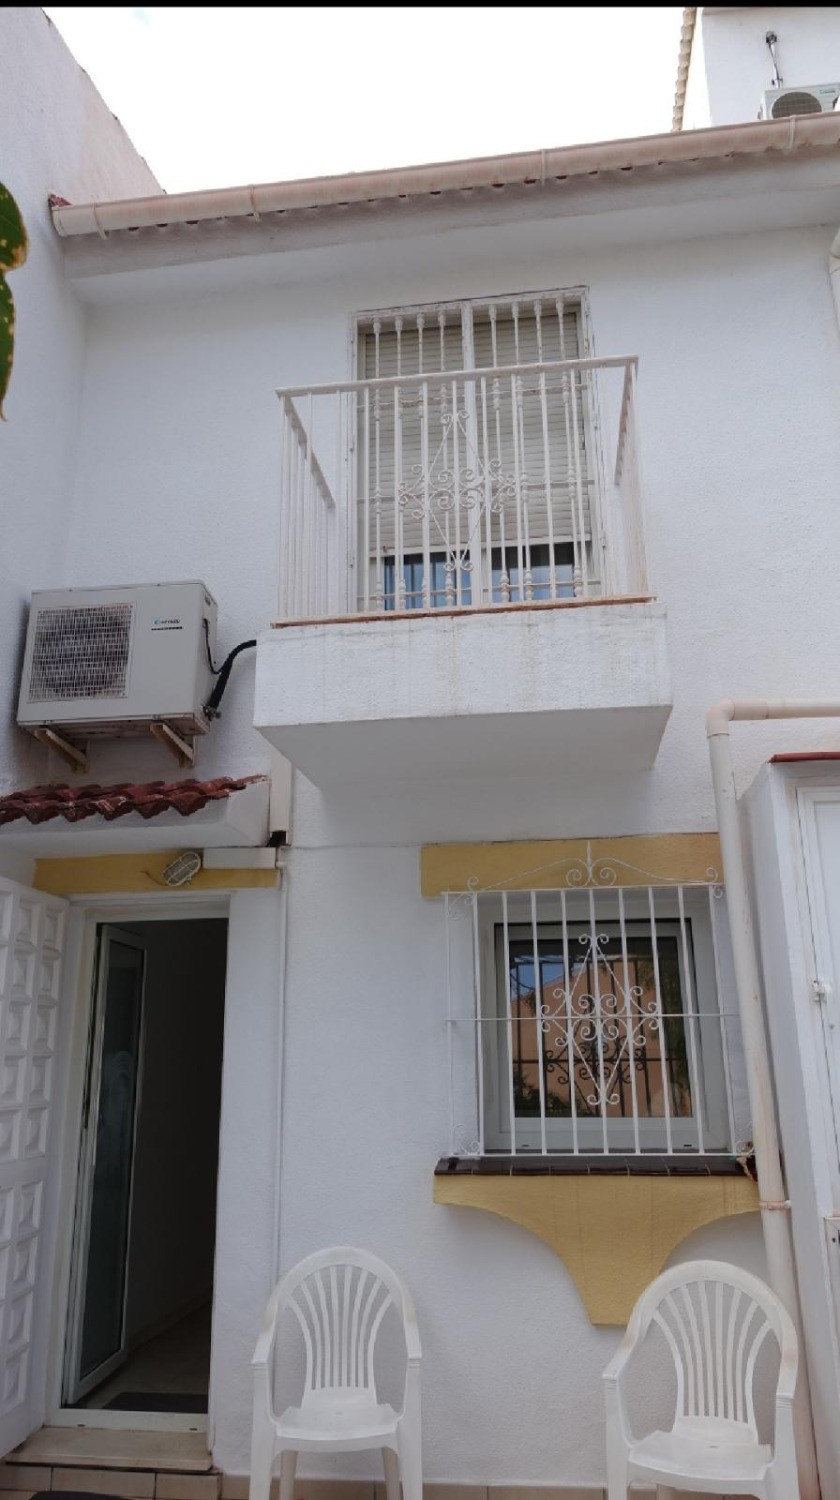 2 Bedroom Terraced Townhouse For Sale Torremolinos